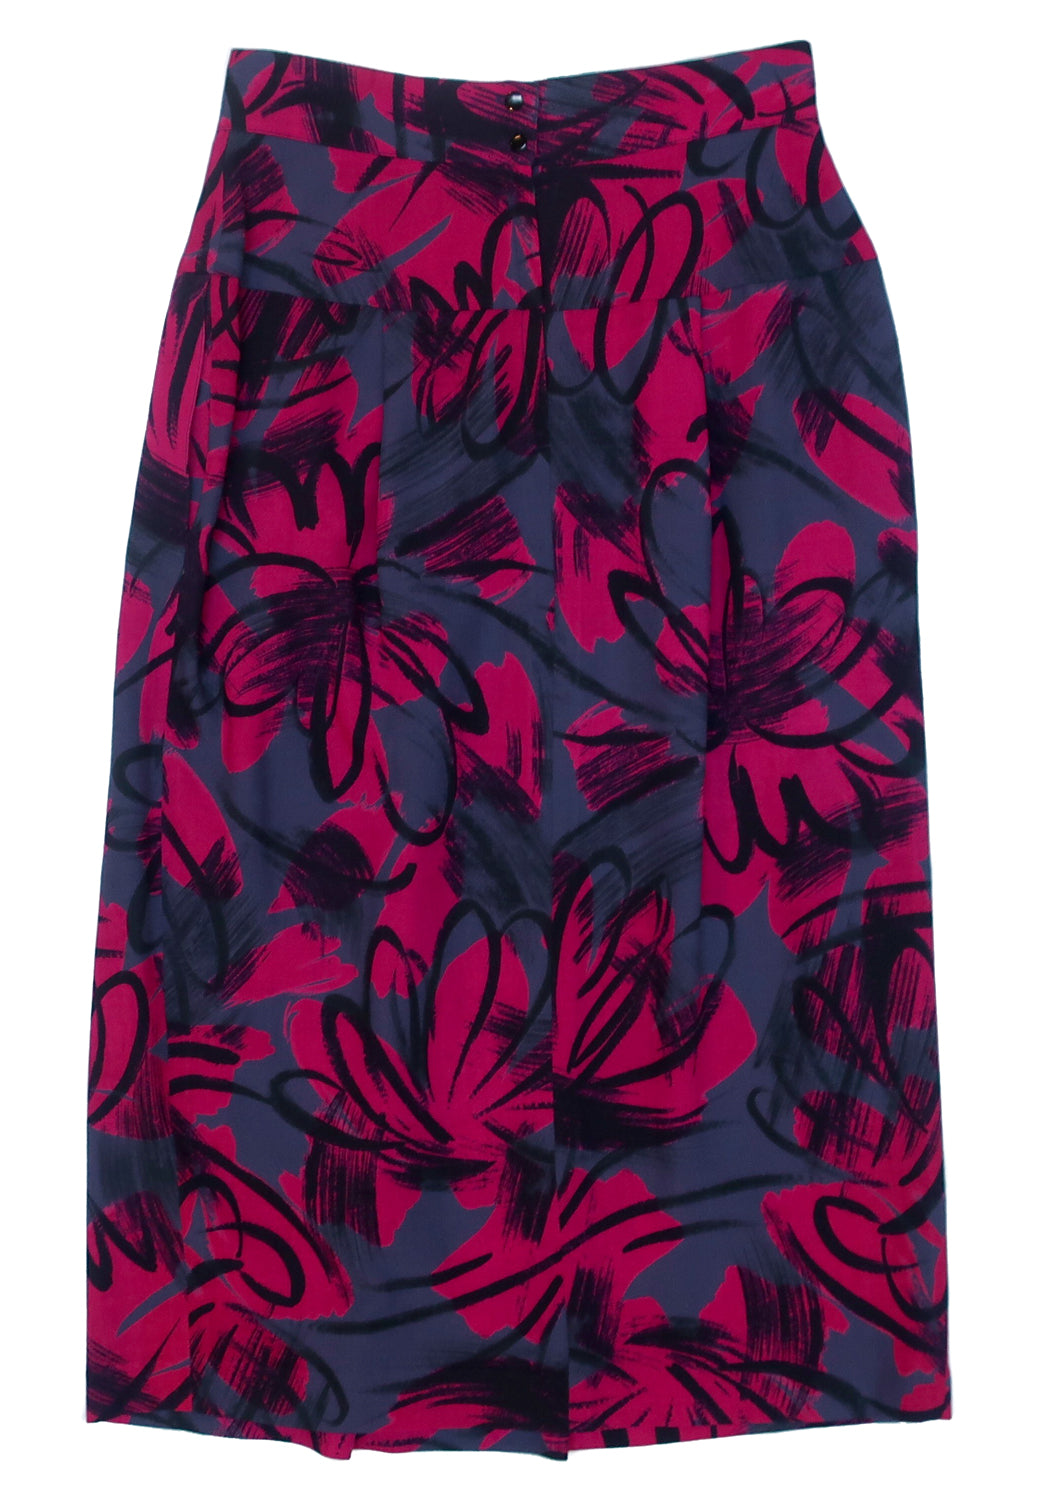 "Second Room Vintage Clothing. Vintage bright pink, grey and black abstract pattern wool midi skirt. Wide 6"" waist band, with pleats starting below that. This skirt is unlined with two side pockets, and a middle back zipper and two buttons at the waist. Free North American shipping on all orders."